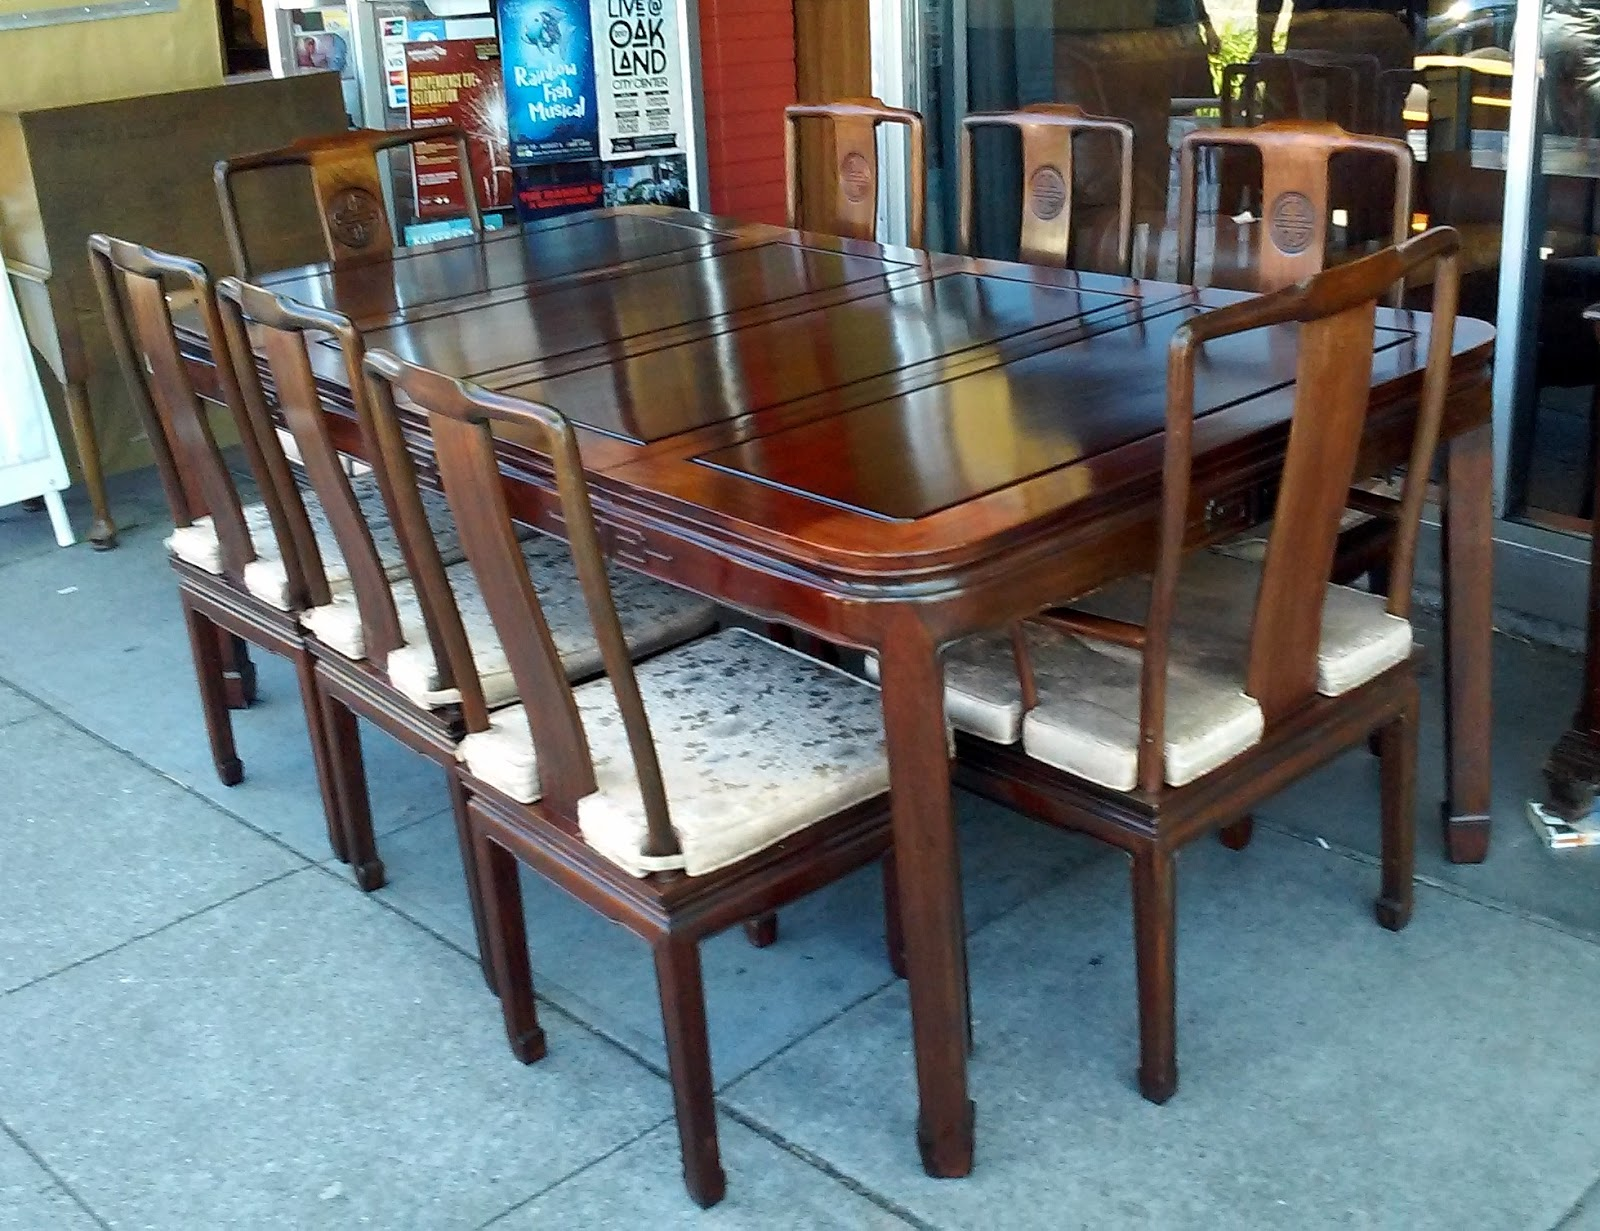 Merveilleux SOLD #1970 Chinese Rosewood Dining Set: Table, 2 Leaves, 8 Chairs   $495